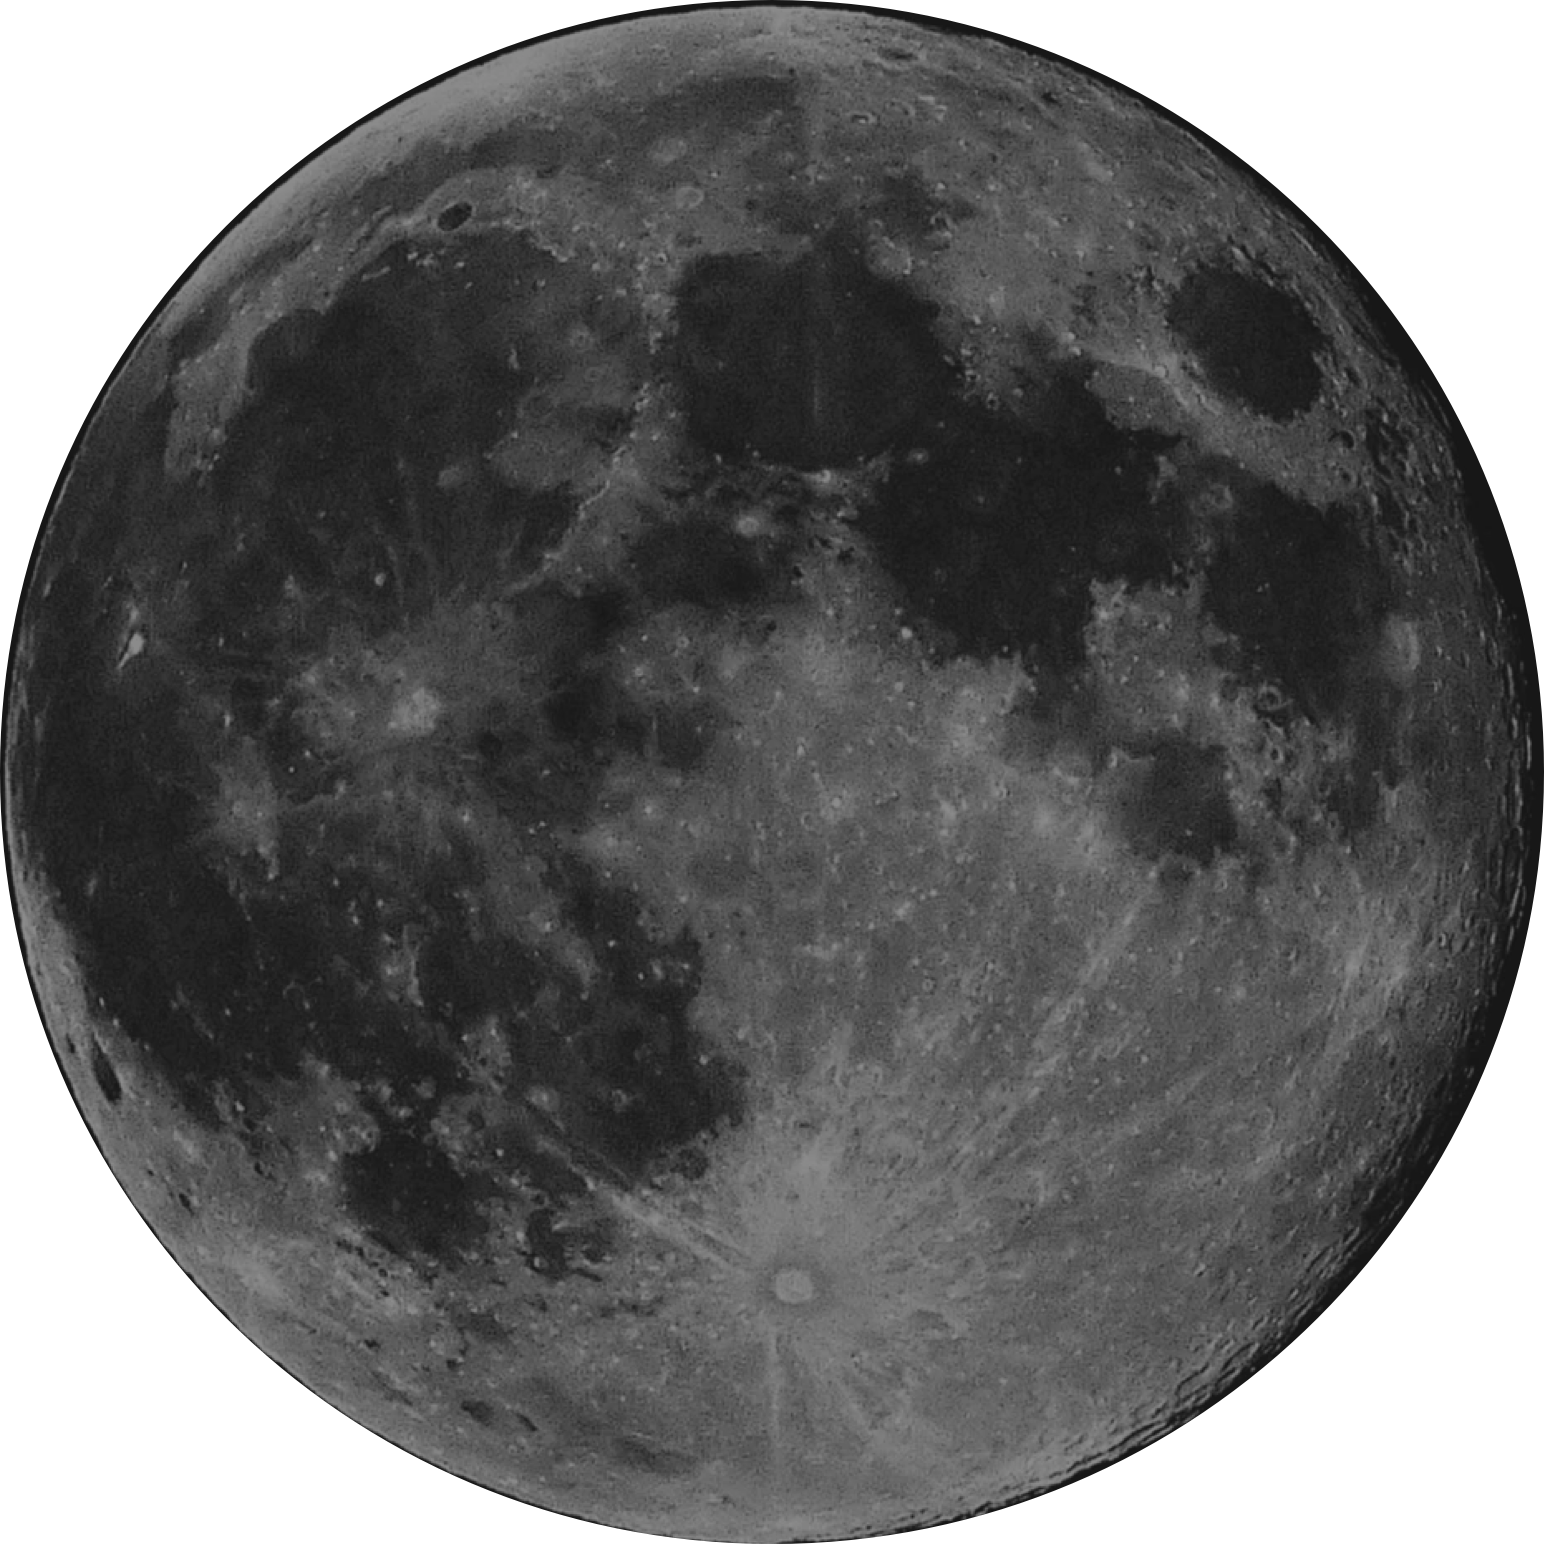 picture of the moon.